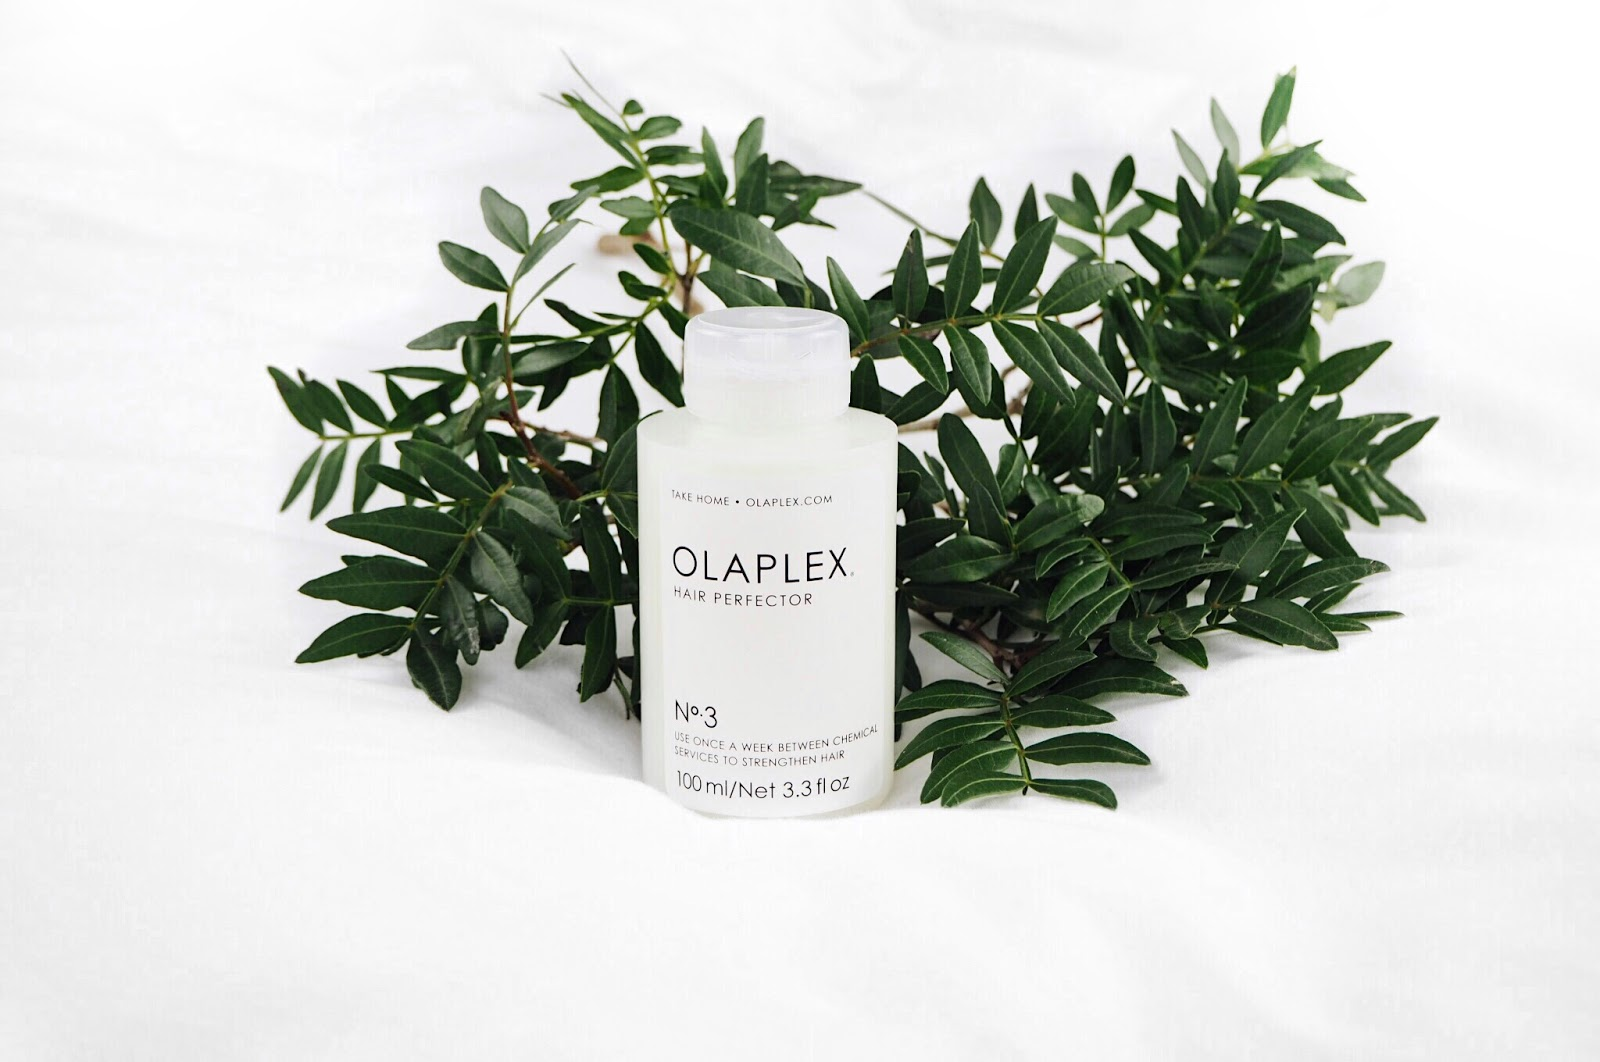 Olaplex No. 3 Treatment on white background (on the bed flatlay) with green leaves from flowers, botancial, beauty blog and hair review